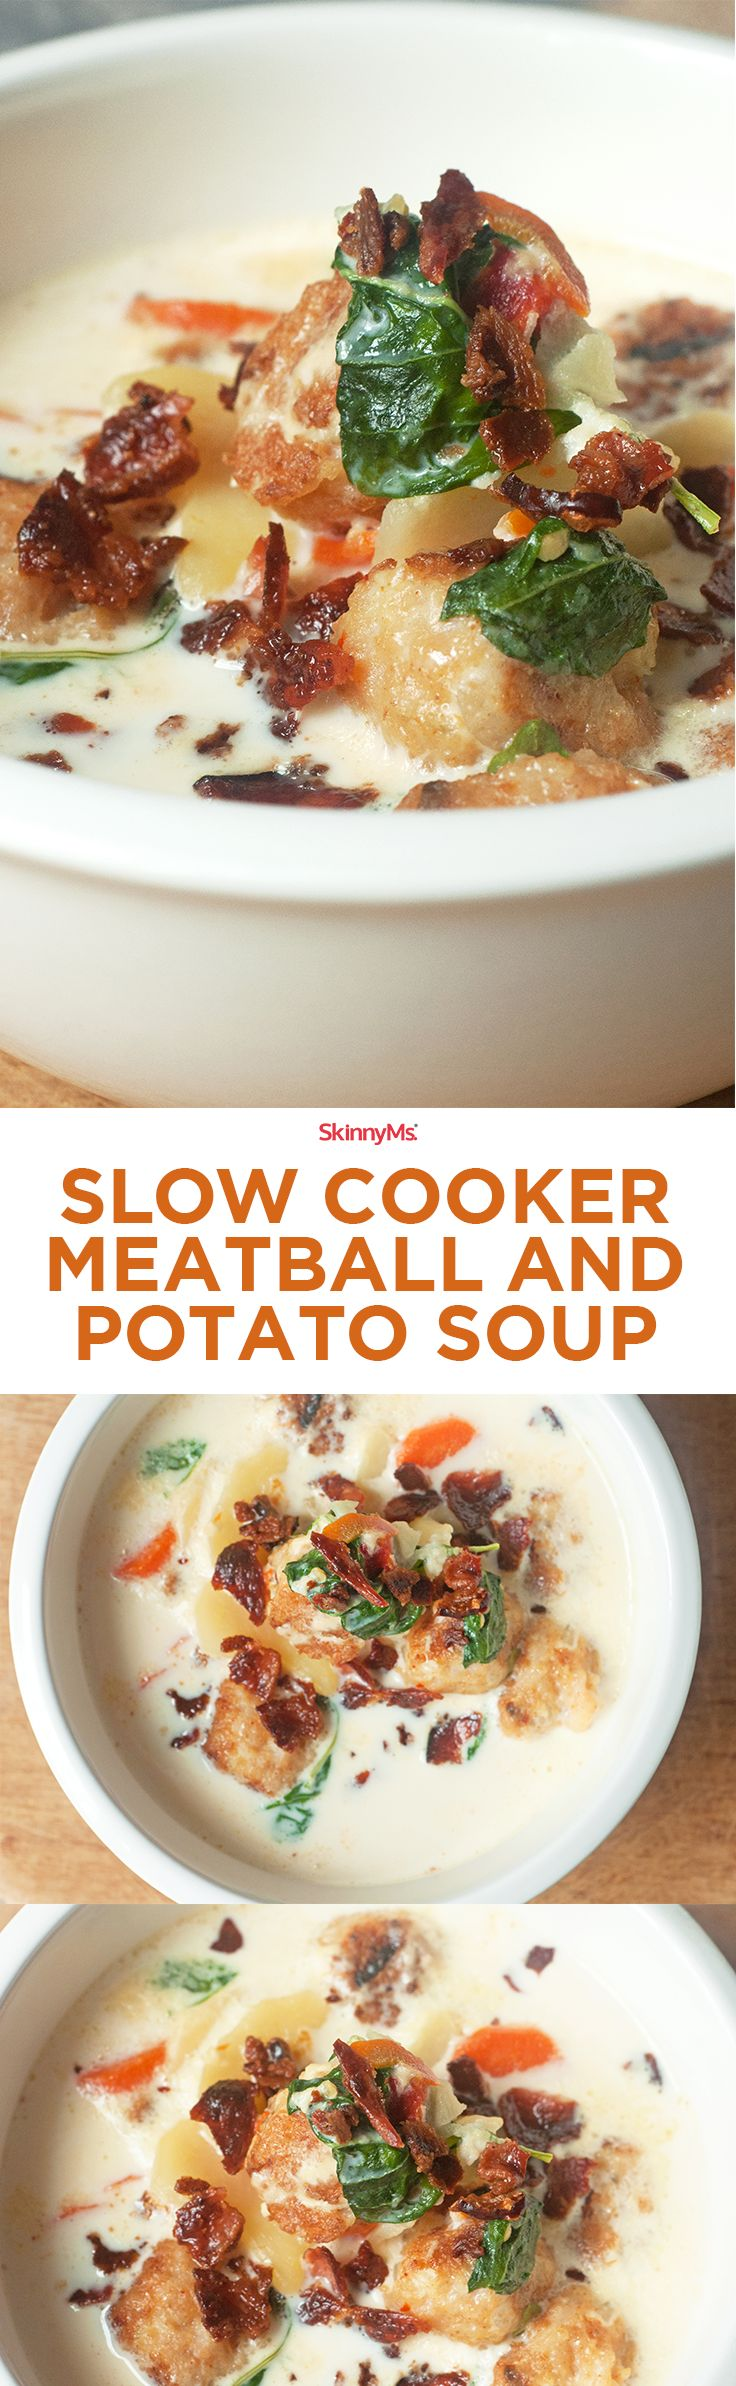 Our Slow Cooker Meatball and Potato Soup the perfect Sunday dinner recipe! | Slow Cooker Recipes | Healthy Recipes | Homemade Dinner Recipes